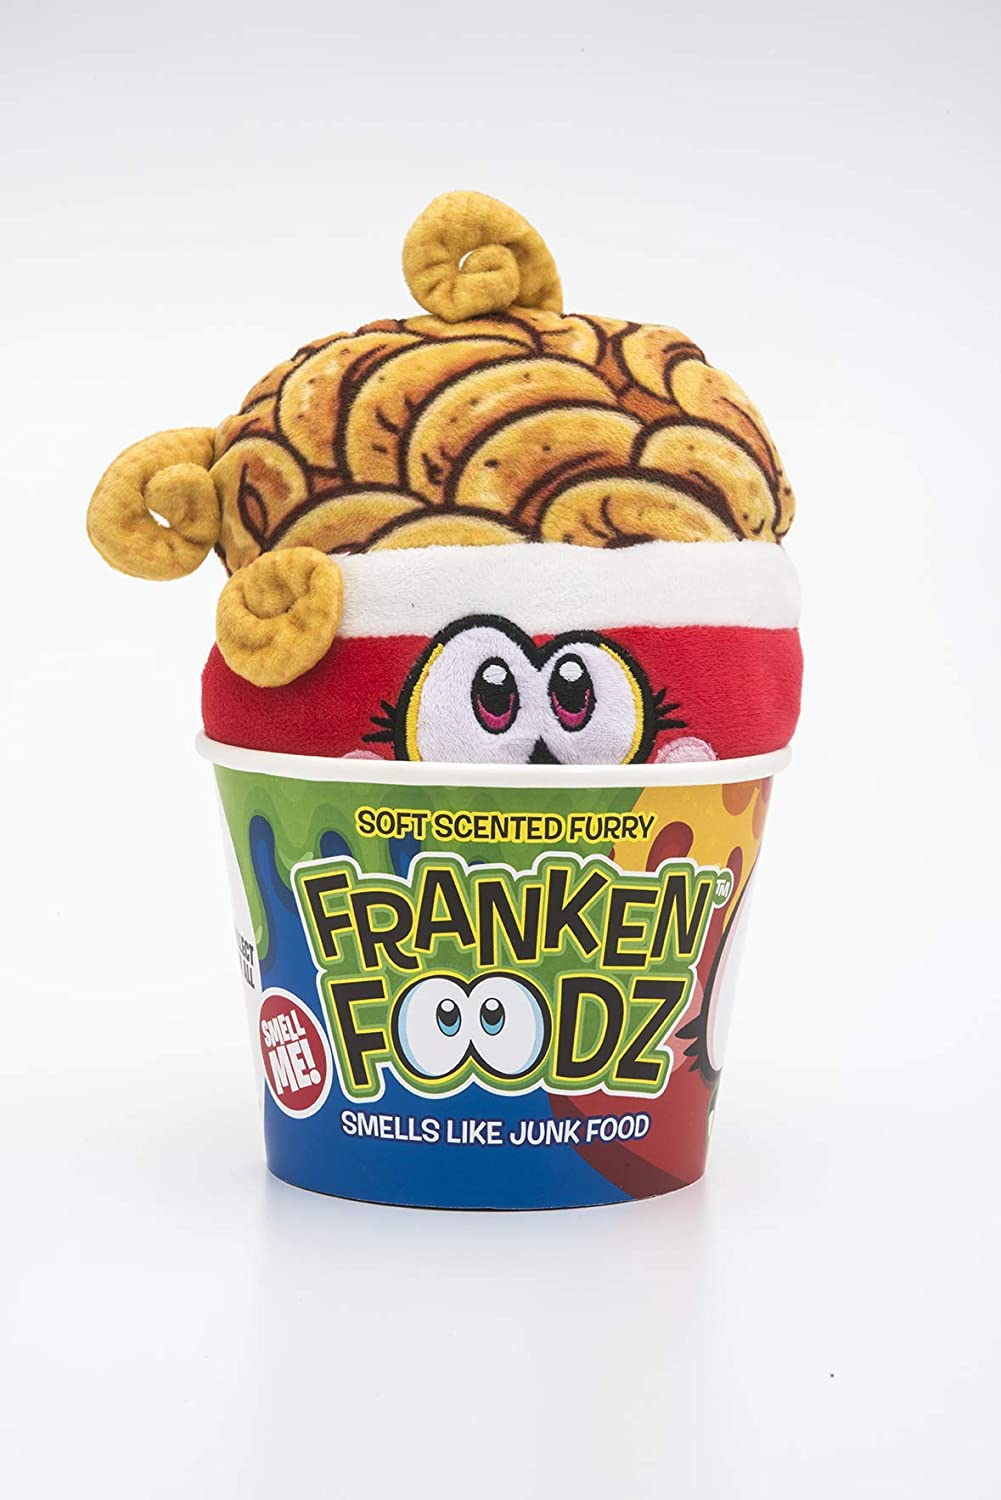 Franken FOODZ - Super Size Curlie Frye French Fry Scented Plush Toy for Kids | Soft Squeezable Furry Plush Toys for Kids | Sensory Stress Relief Toy Smells Awesome Like The Real Food | Large Size